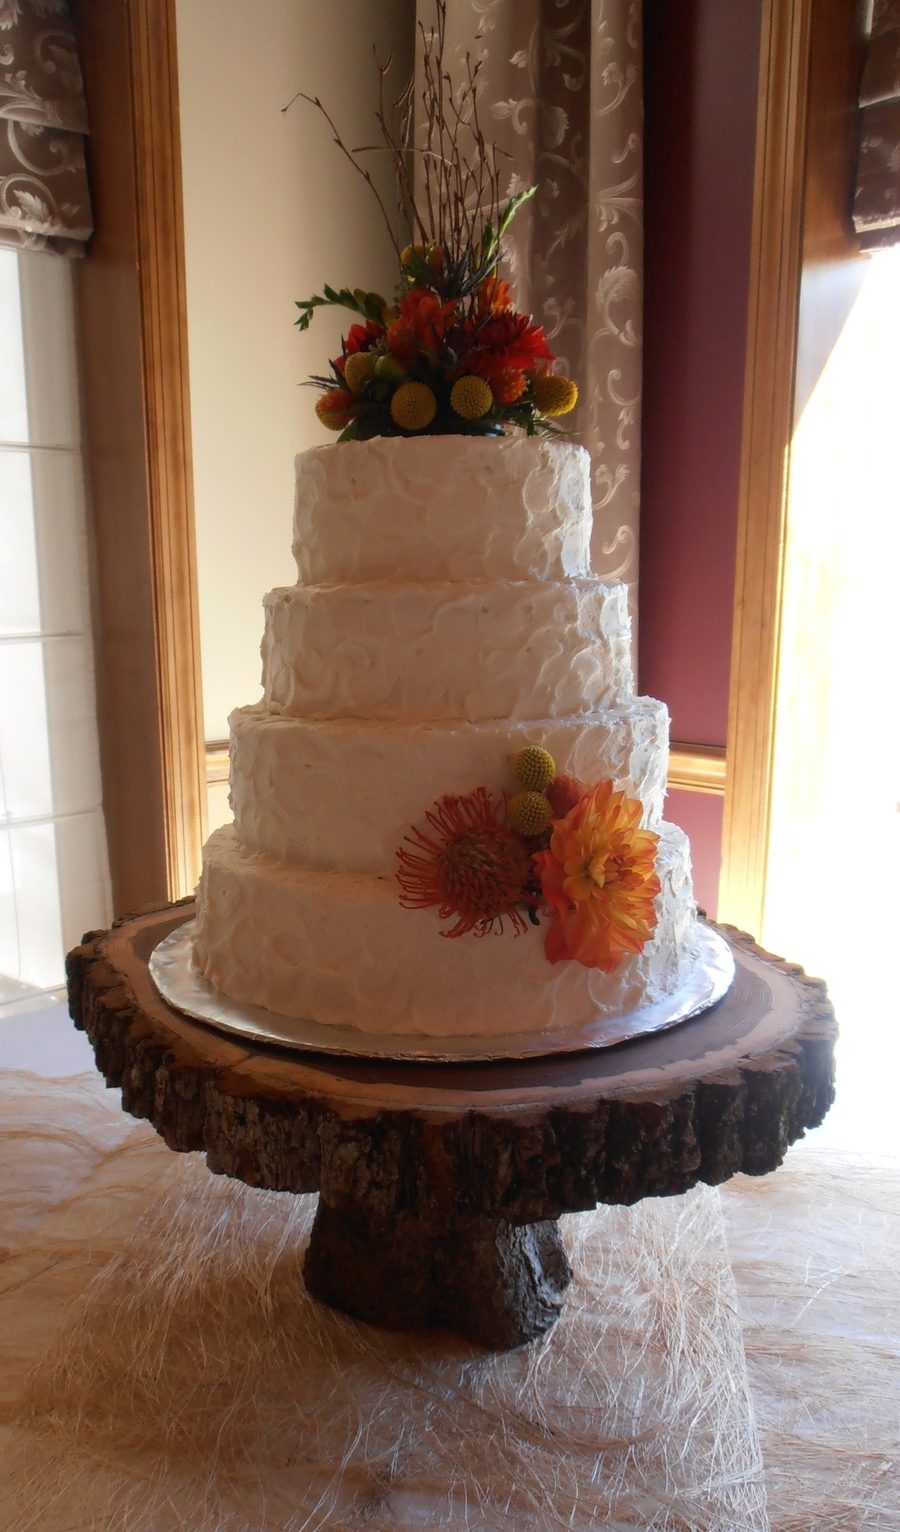 Rustic Autumn Wedding on Cake Central